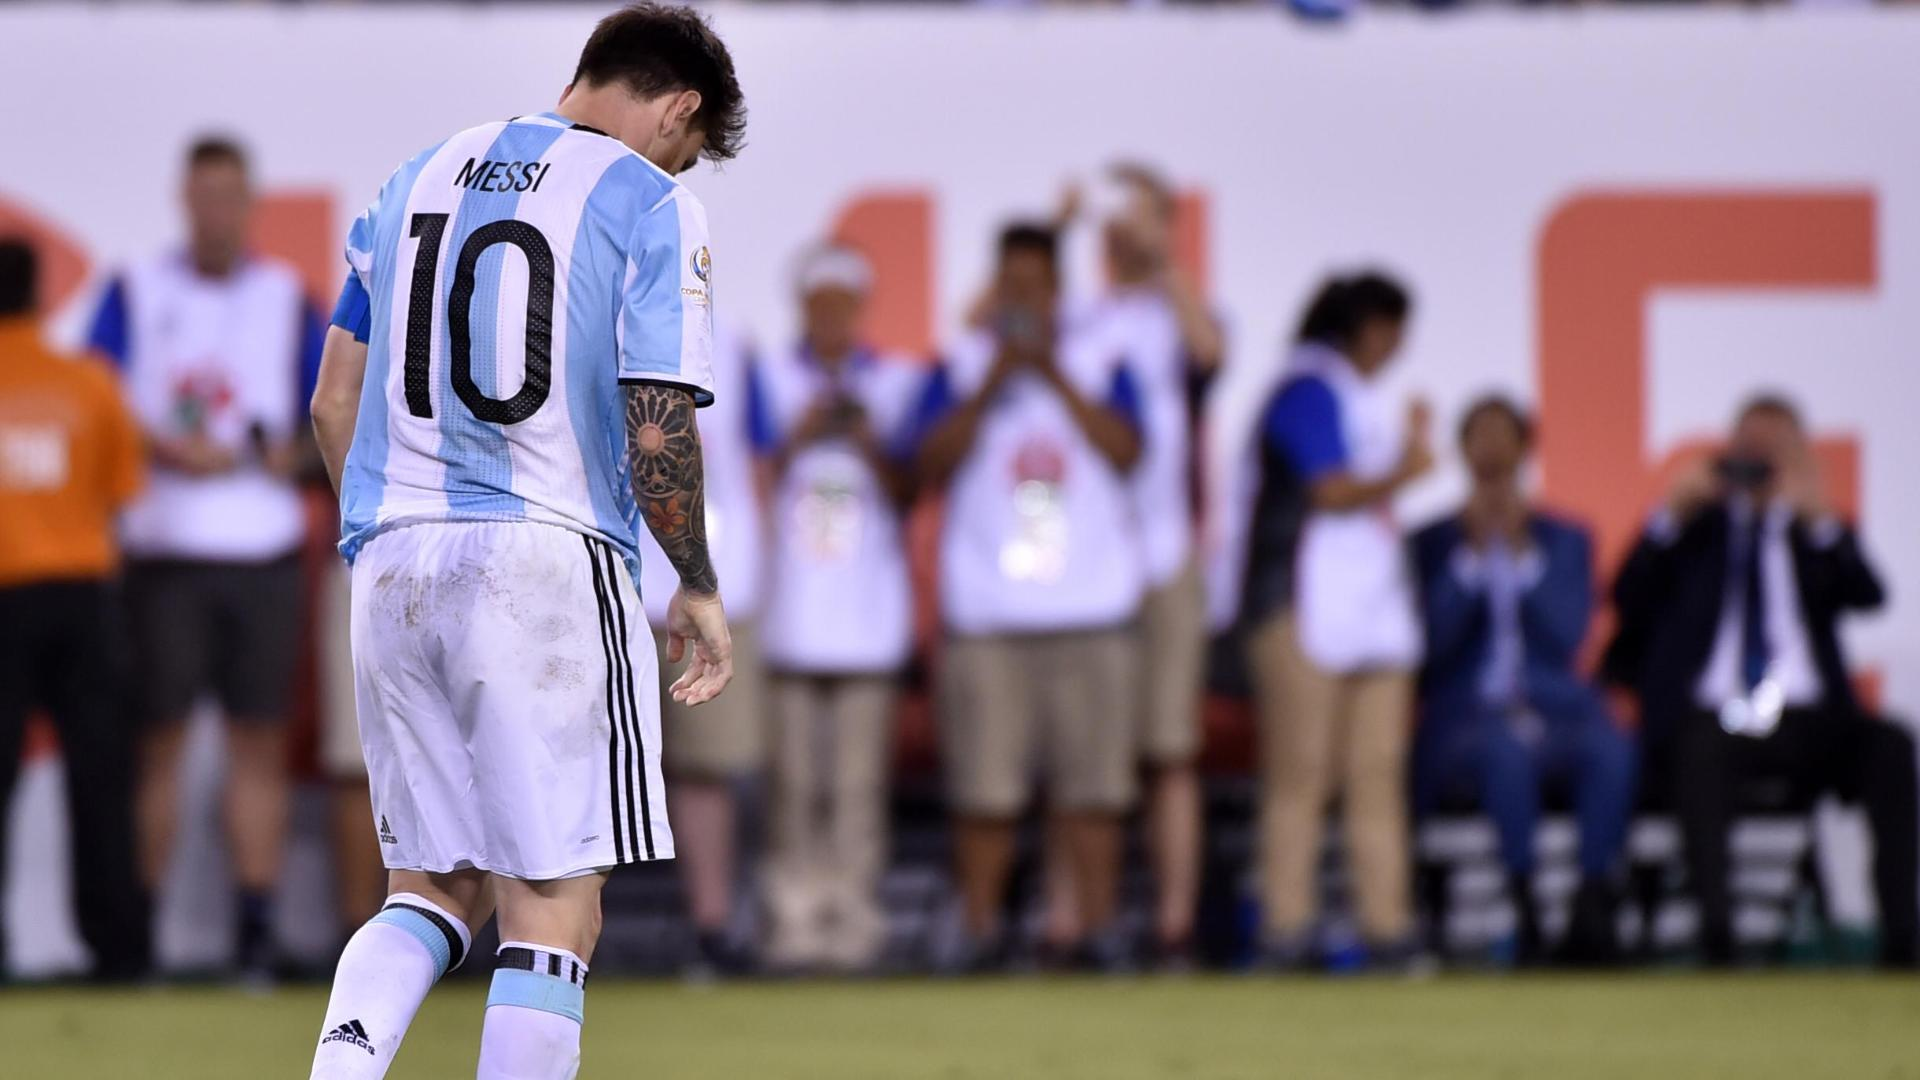 Messi, Argentina fall again in Copa America